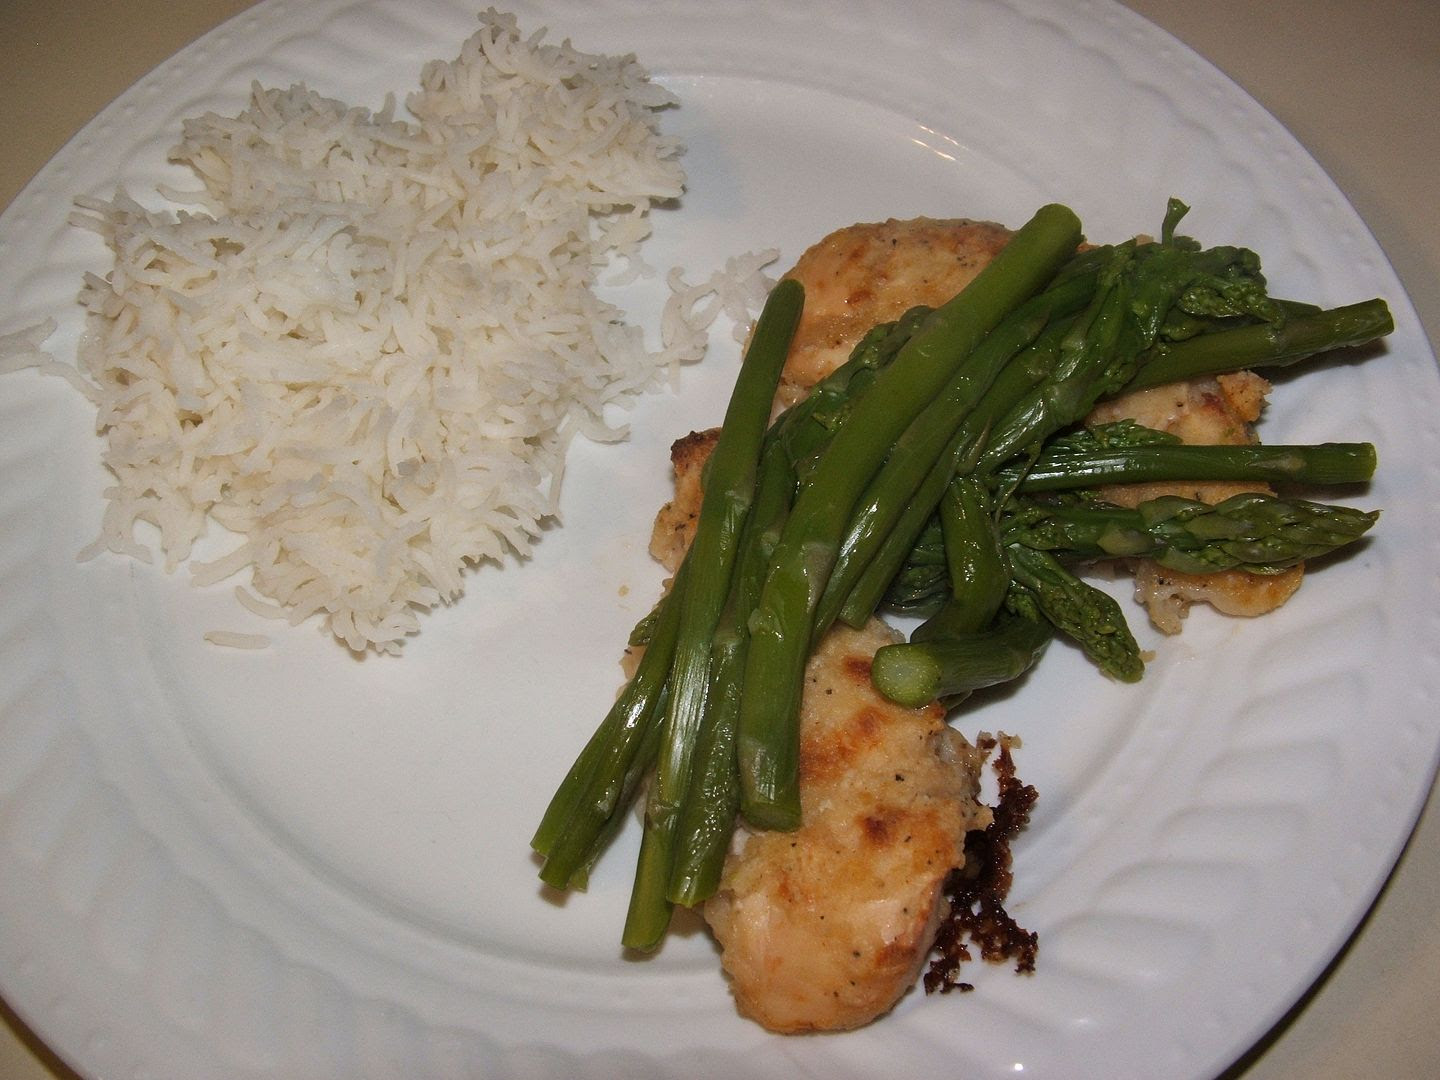 Lemon Asparagus Chicken by Angie Ouellette-Tower for godsgrowinggarden.com photo 008_zps434a4842.jpg